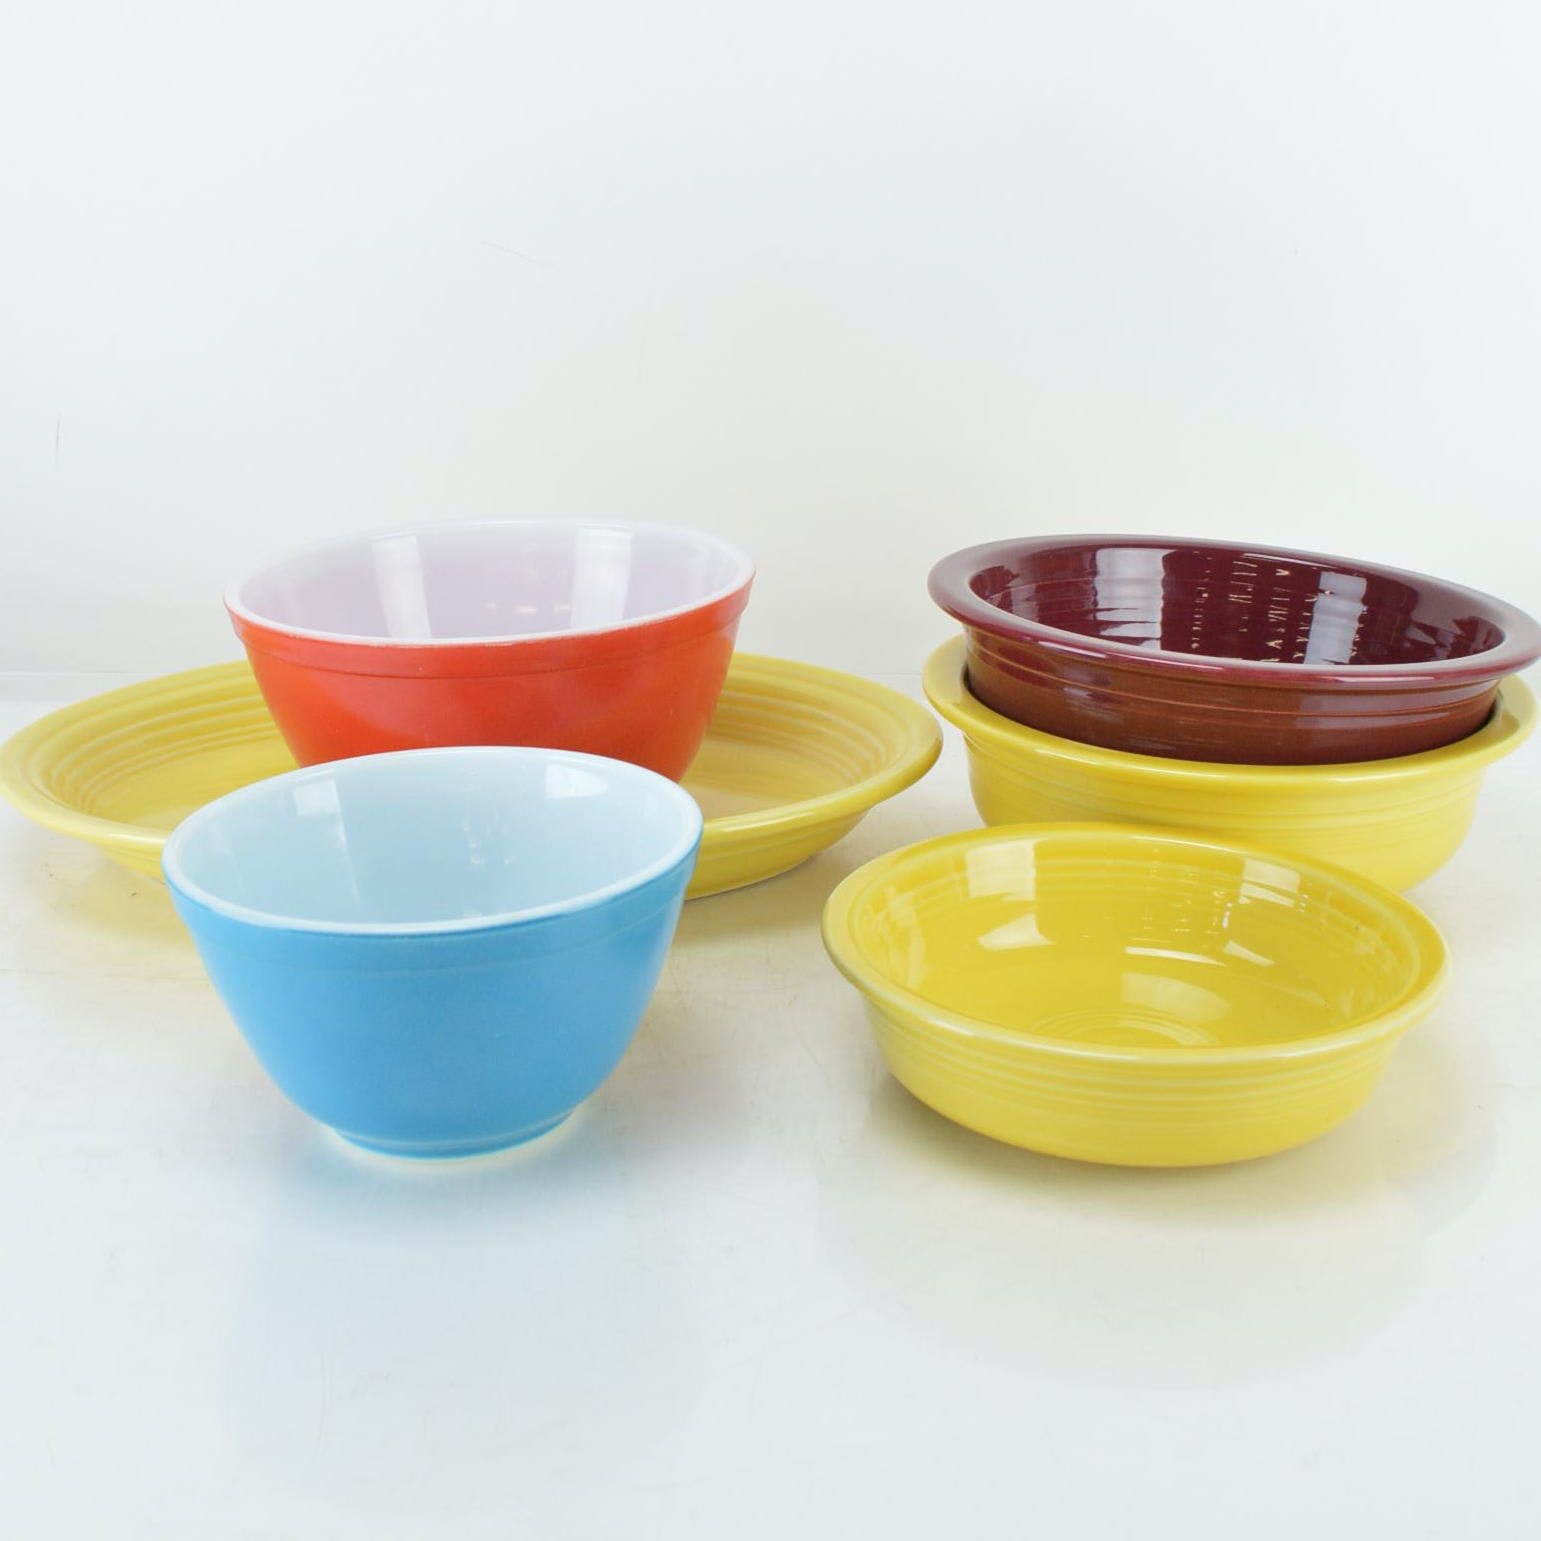 Pyrex Mixing Bowls and Fiesta Serving Pieces